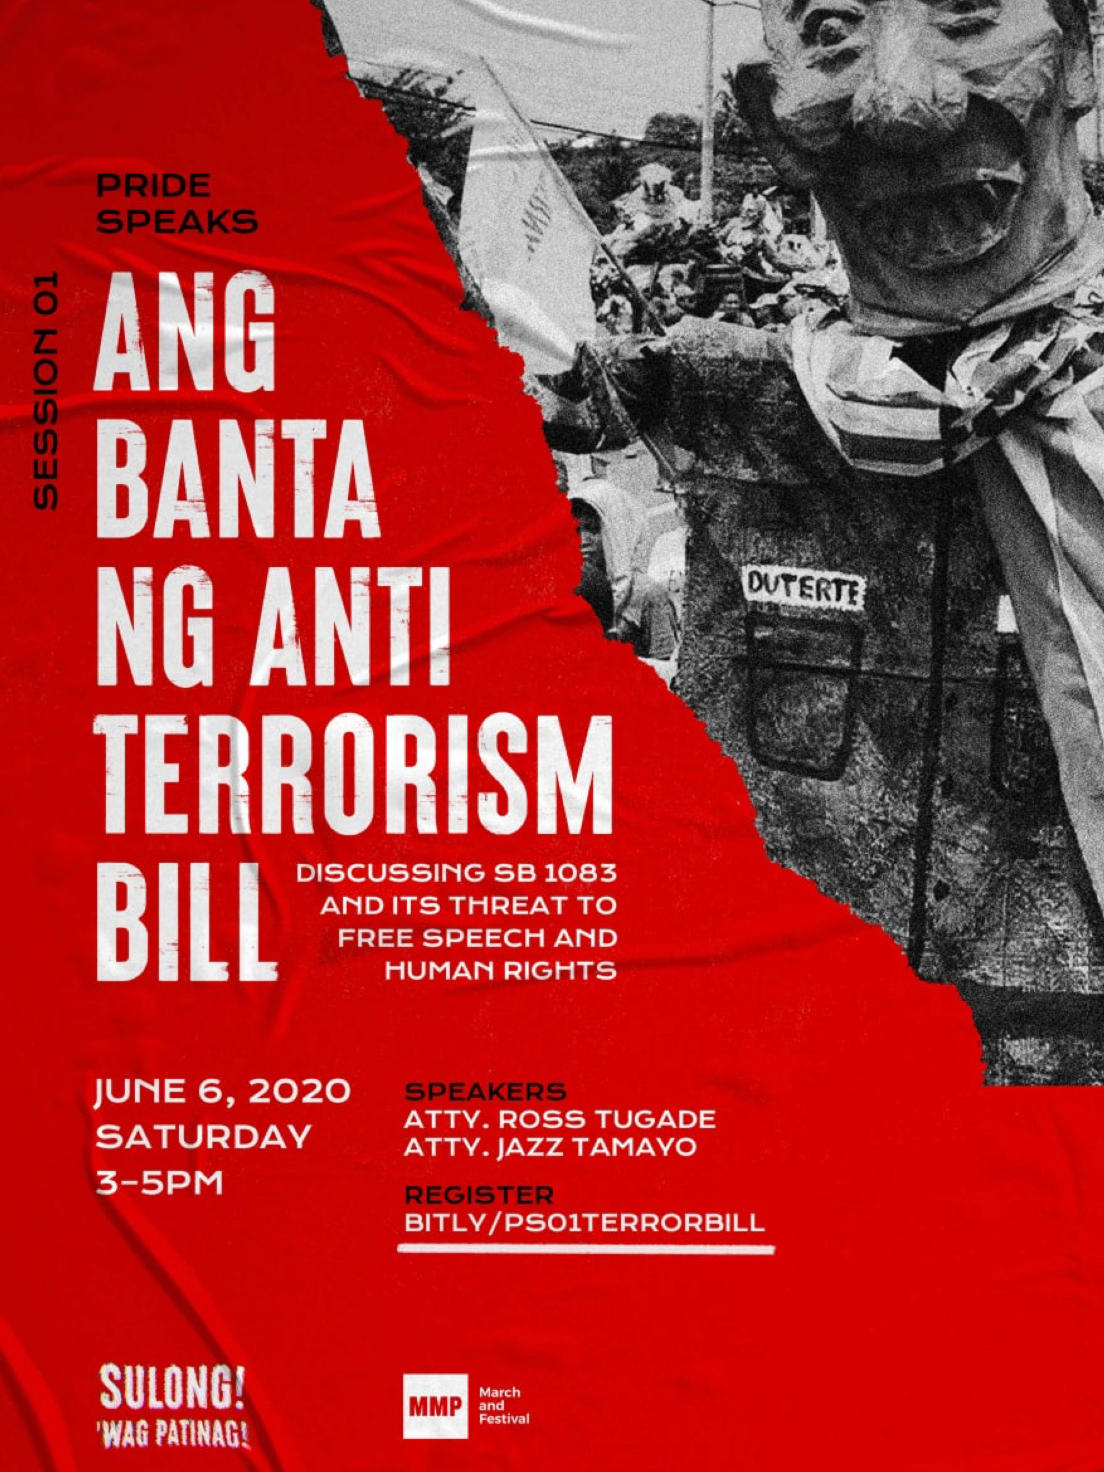 Image: A poster in red with a frayed black and white photo of a Duterte effigy with sharp teeth. The poster reads